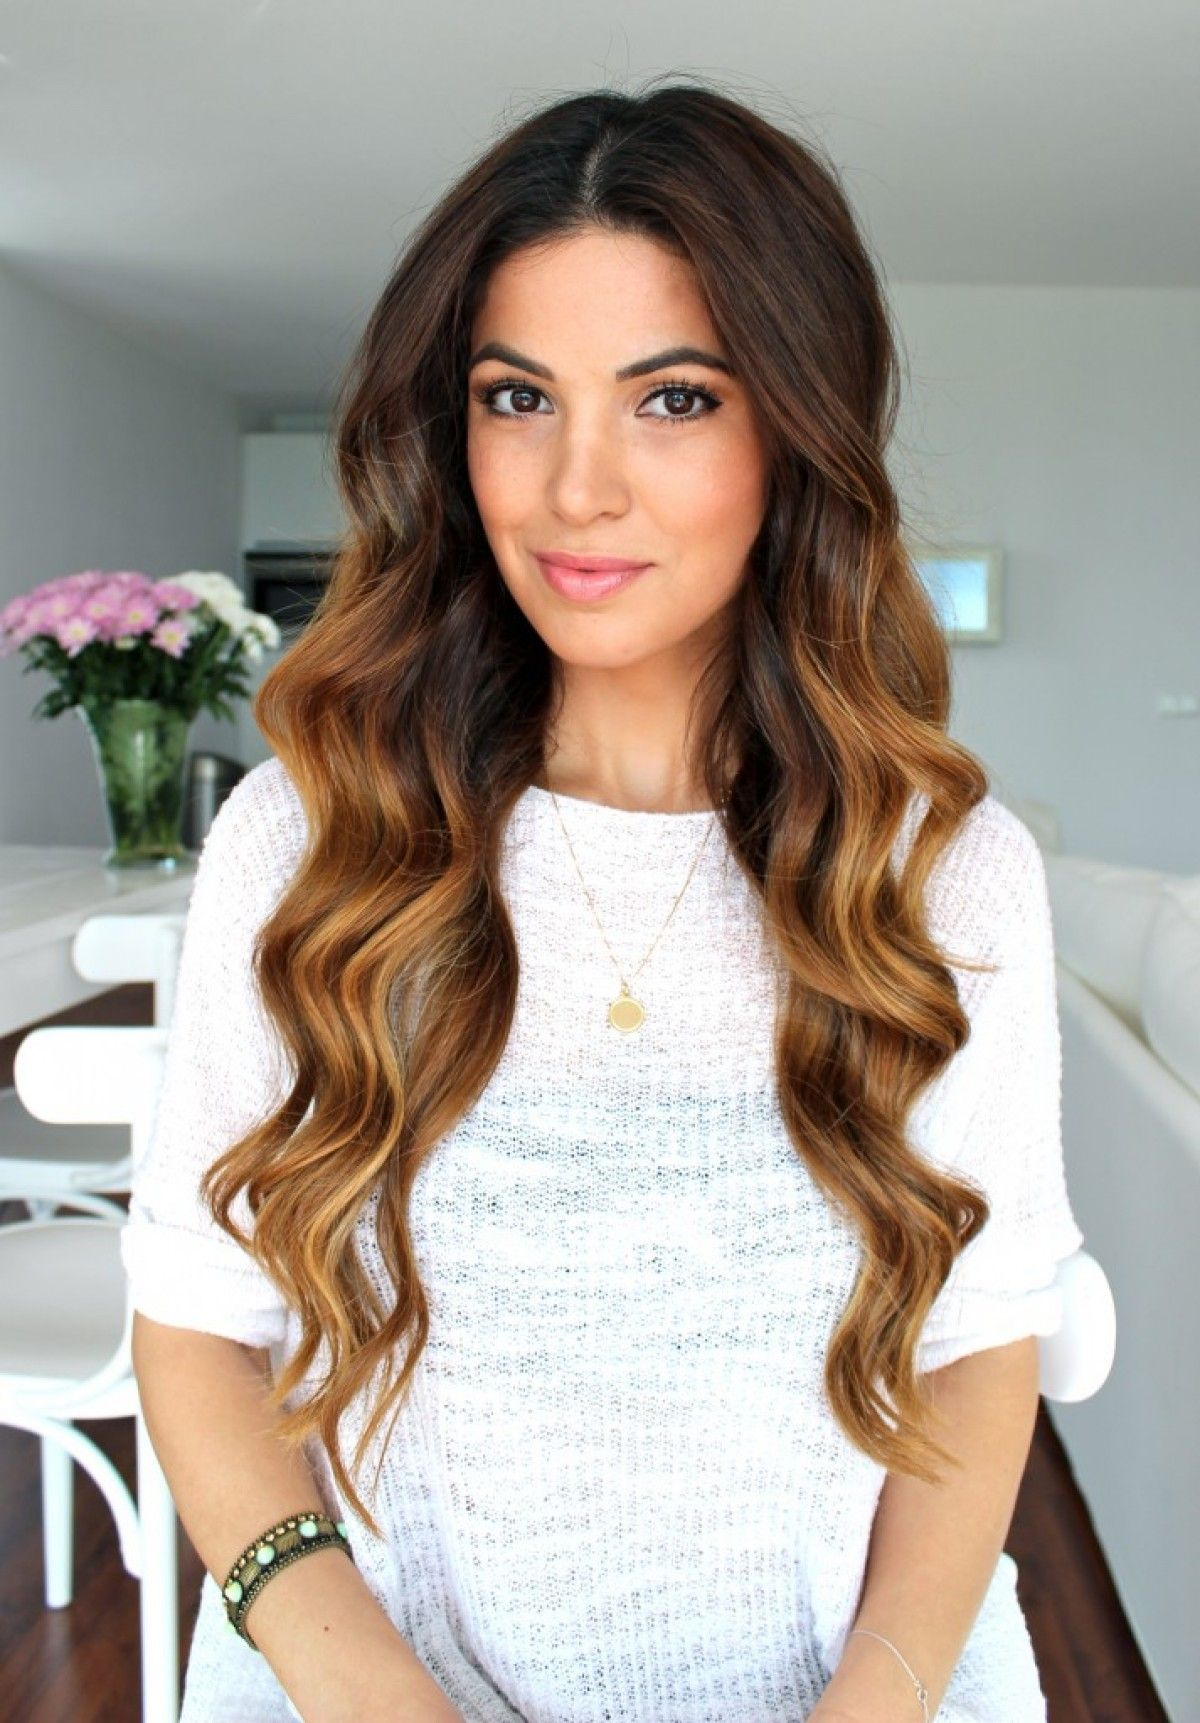 Love Her Hair Soft Bouncy Curls Tutorial She Has Some Great - Wavy hair